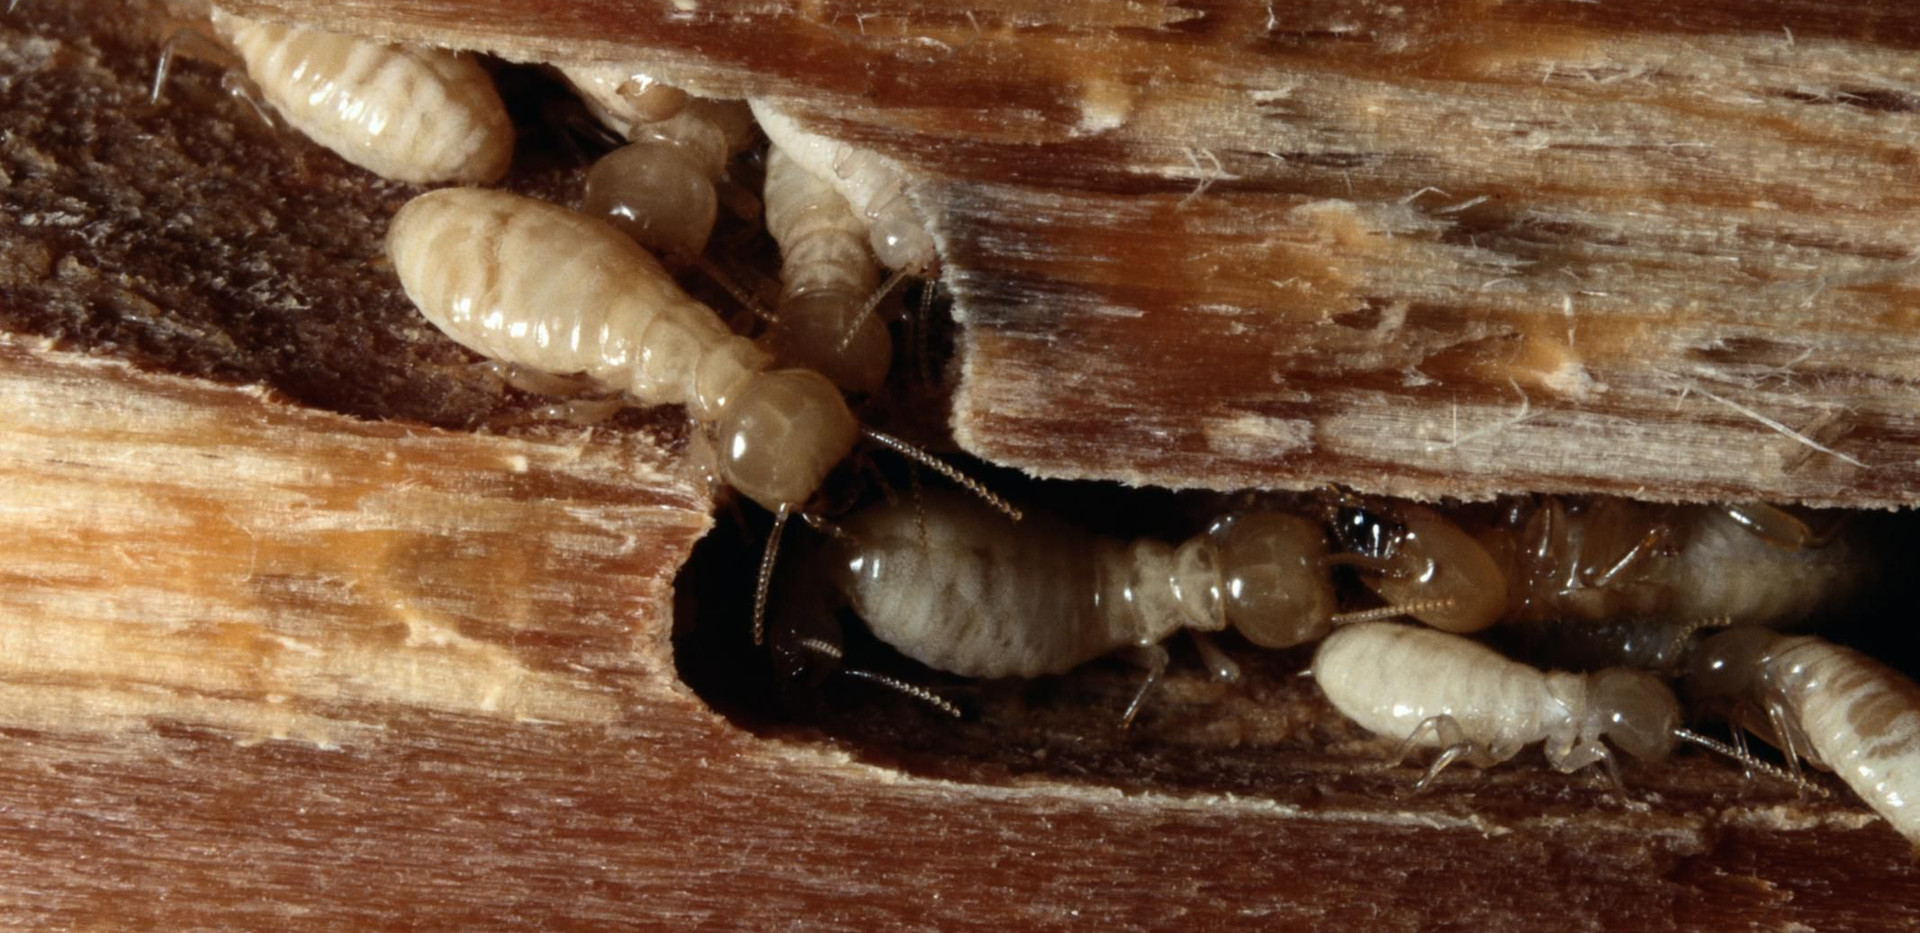 Wood Destorying Insects